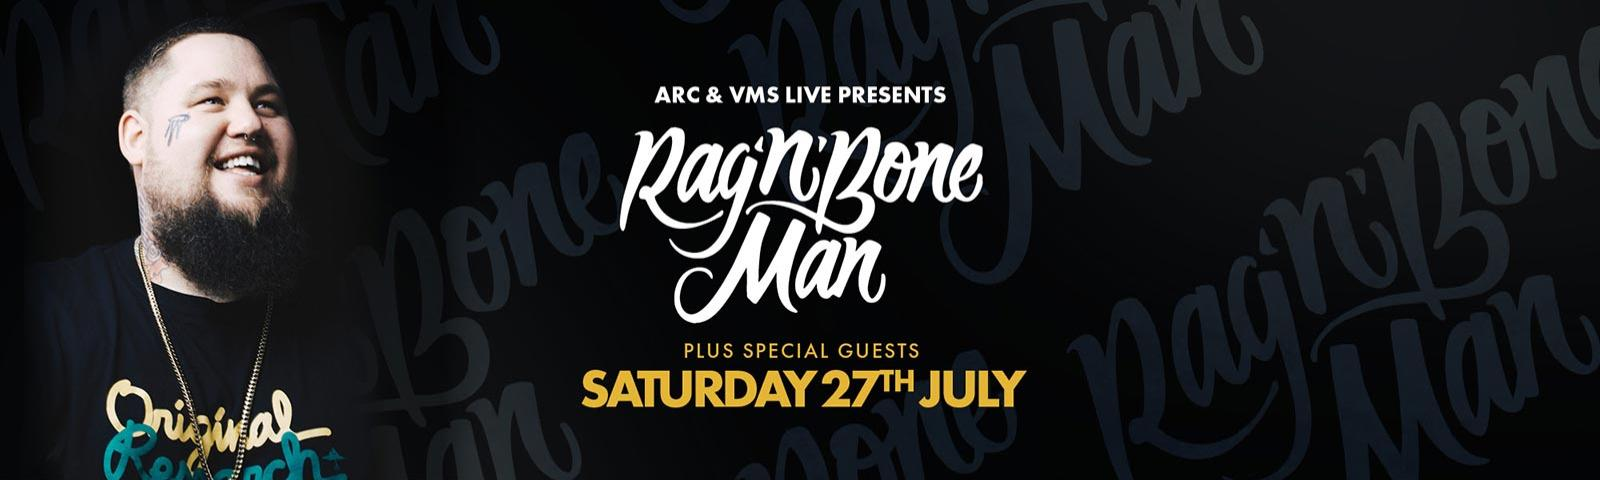 A promotional advert for Rag n Bone Man at Brighton Racecourse on 27th July 2019